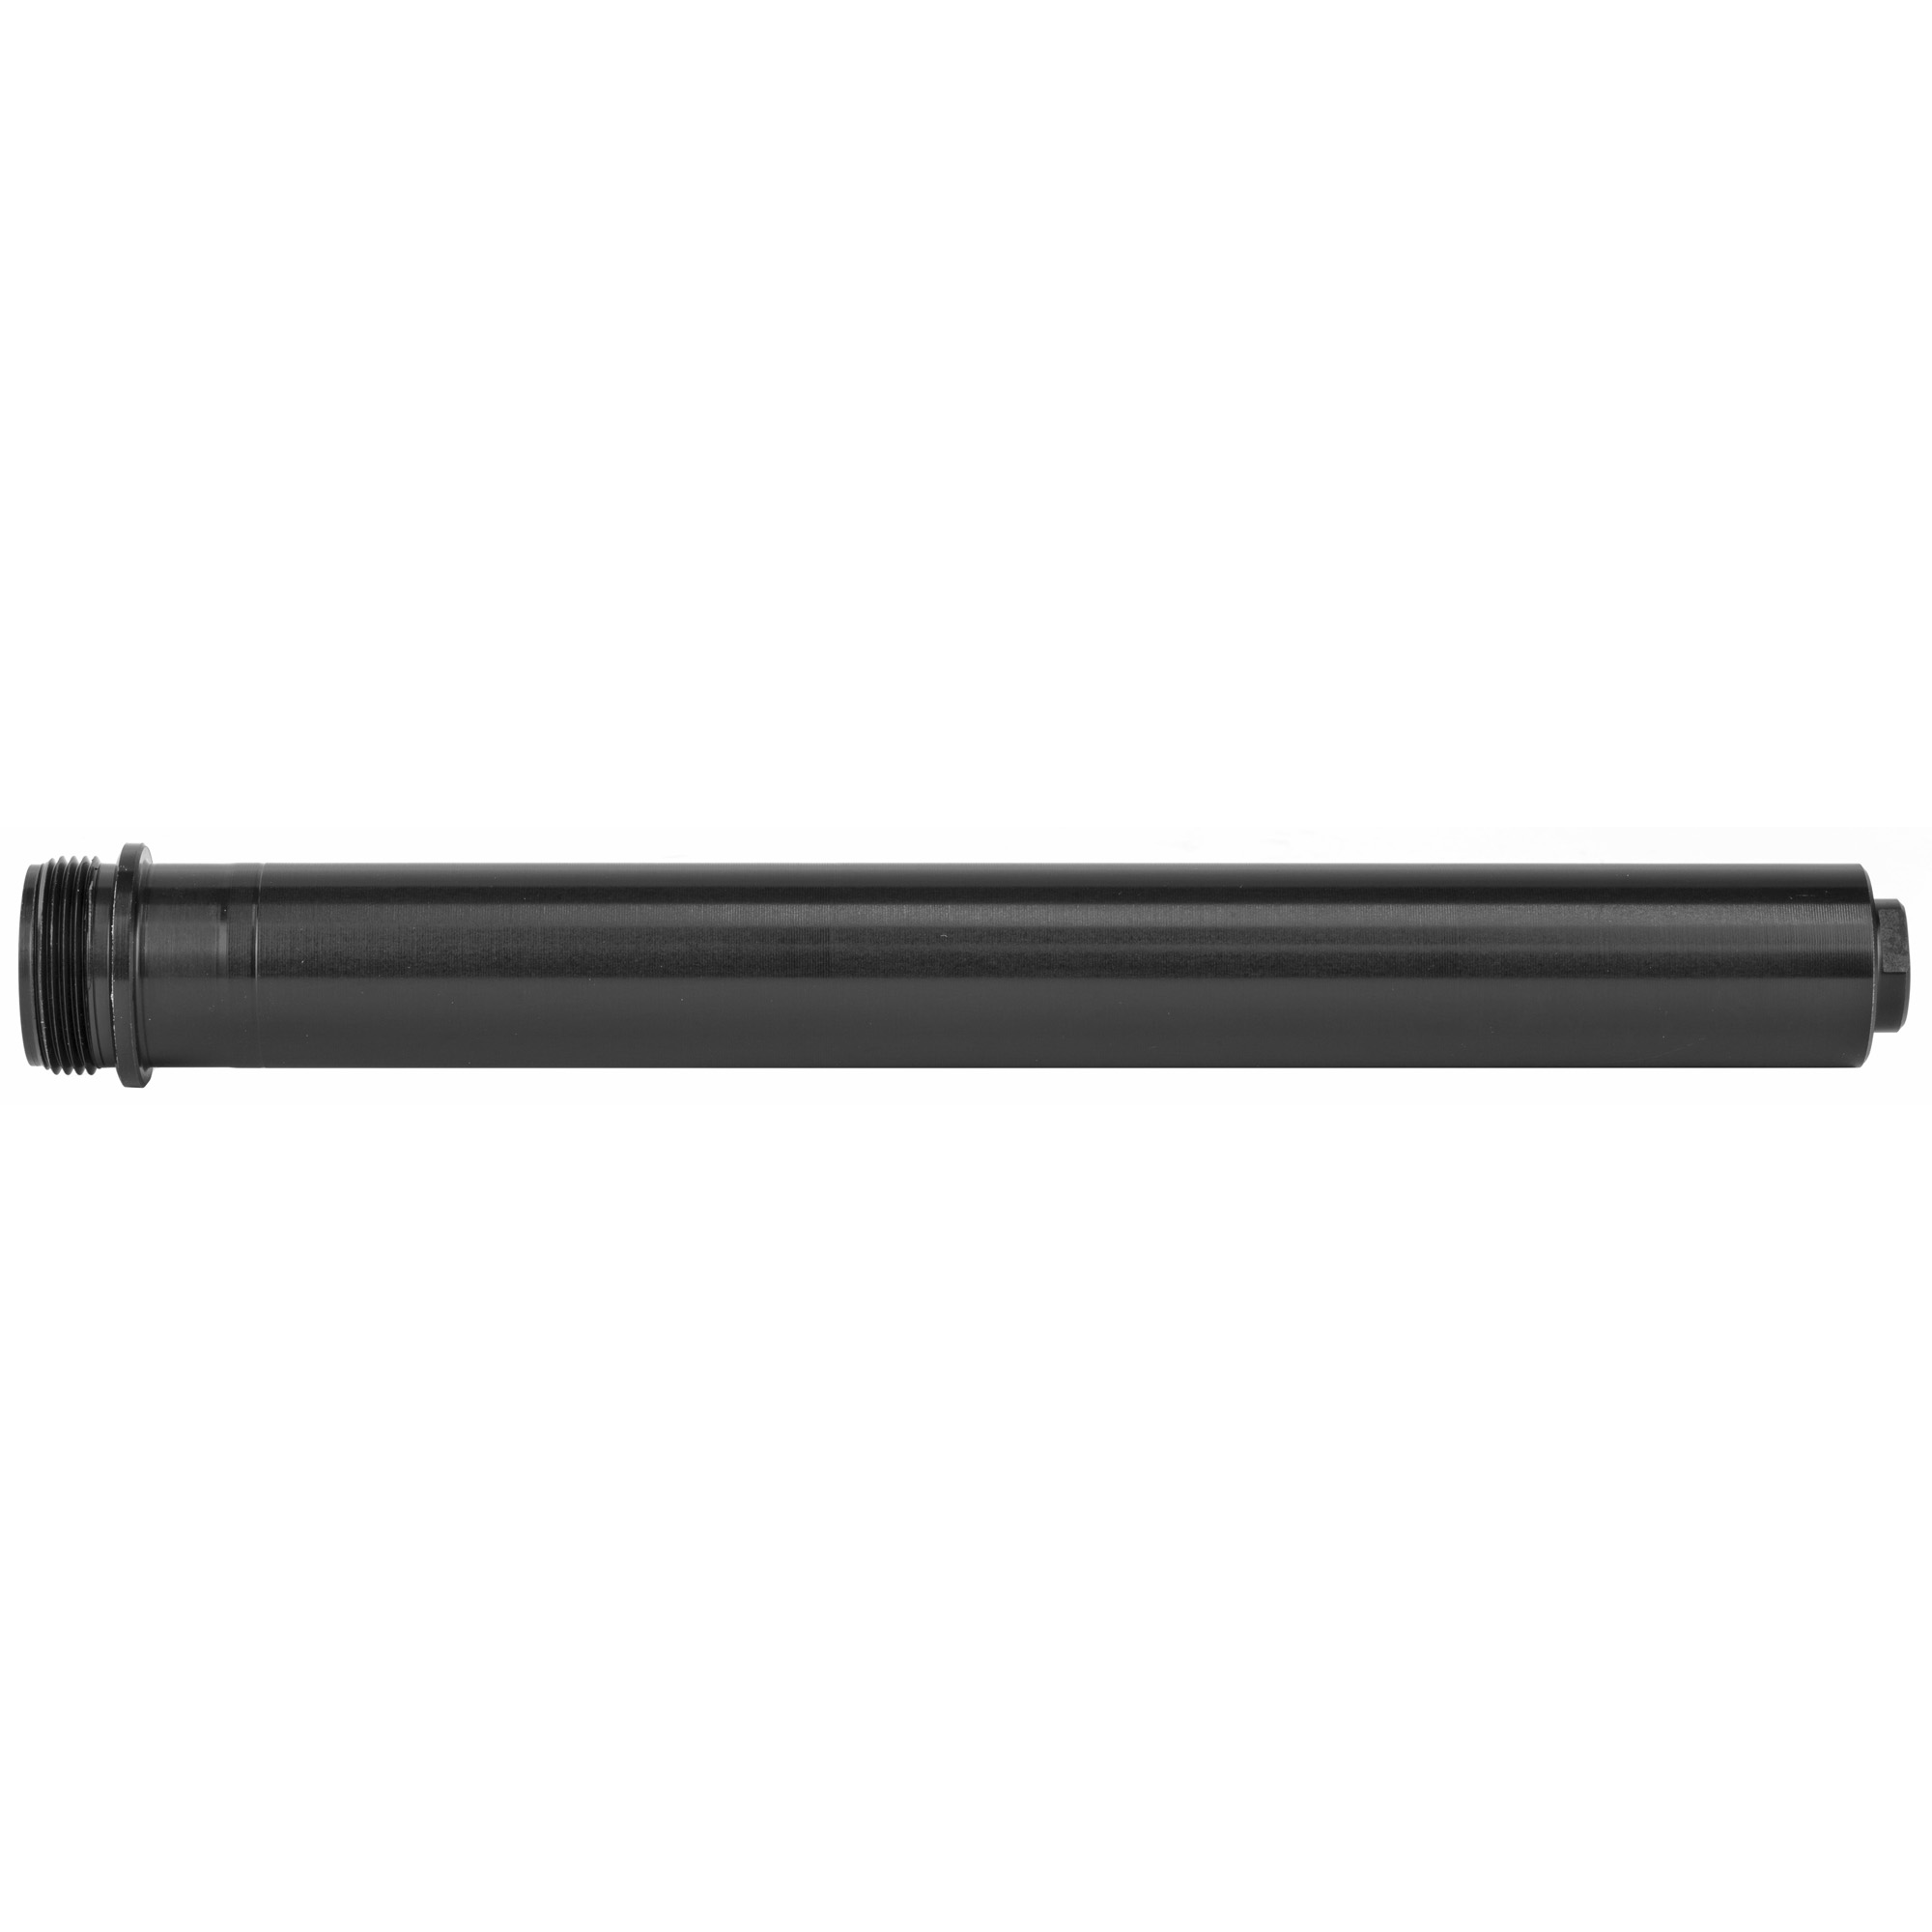 Luth-AR, .223/.308 Rifle Buttstock Extension Tube, A2, Black